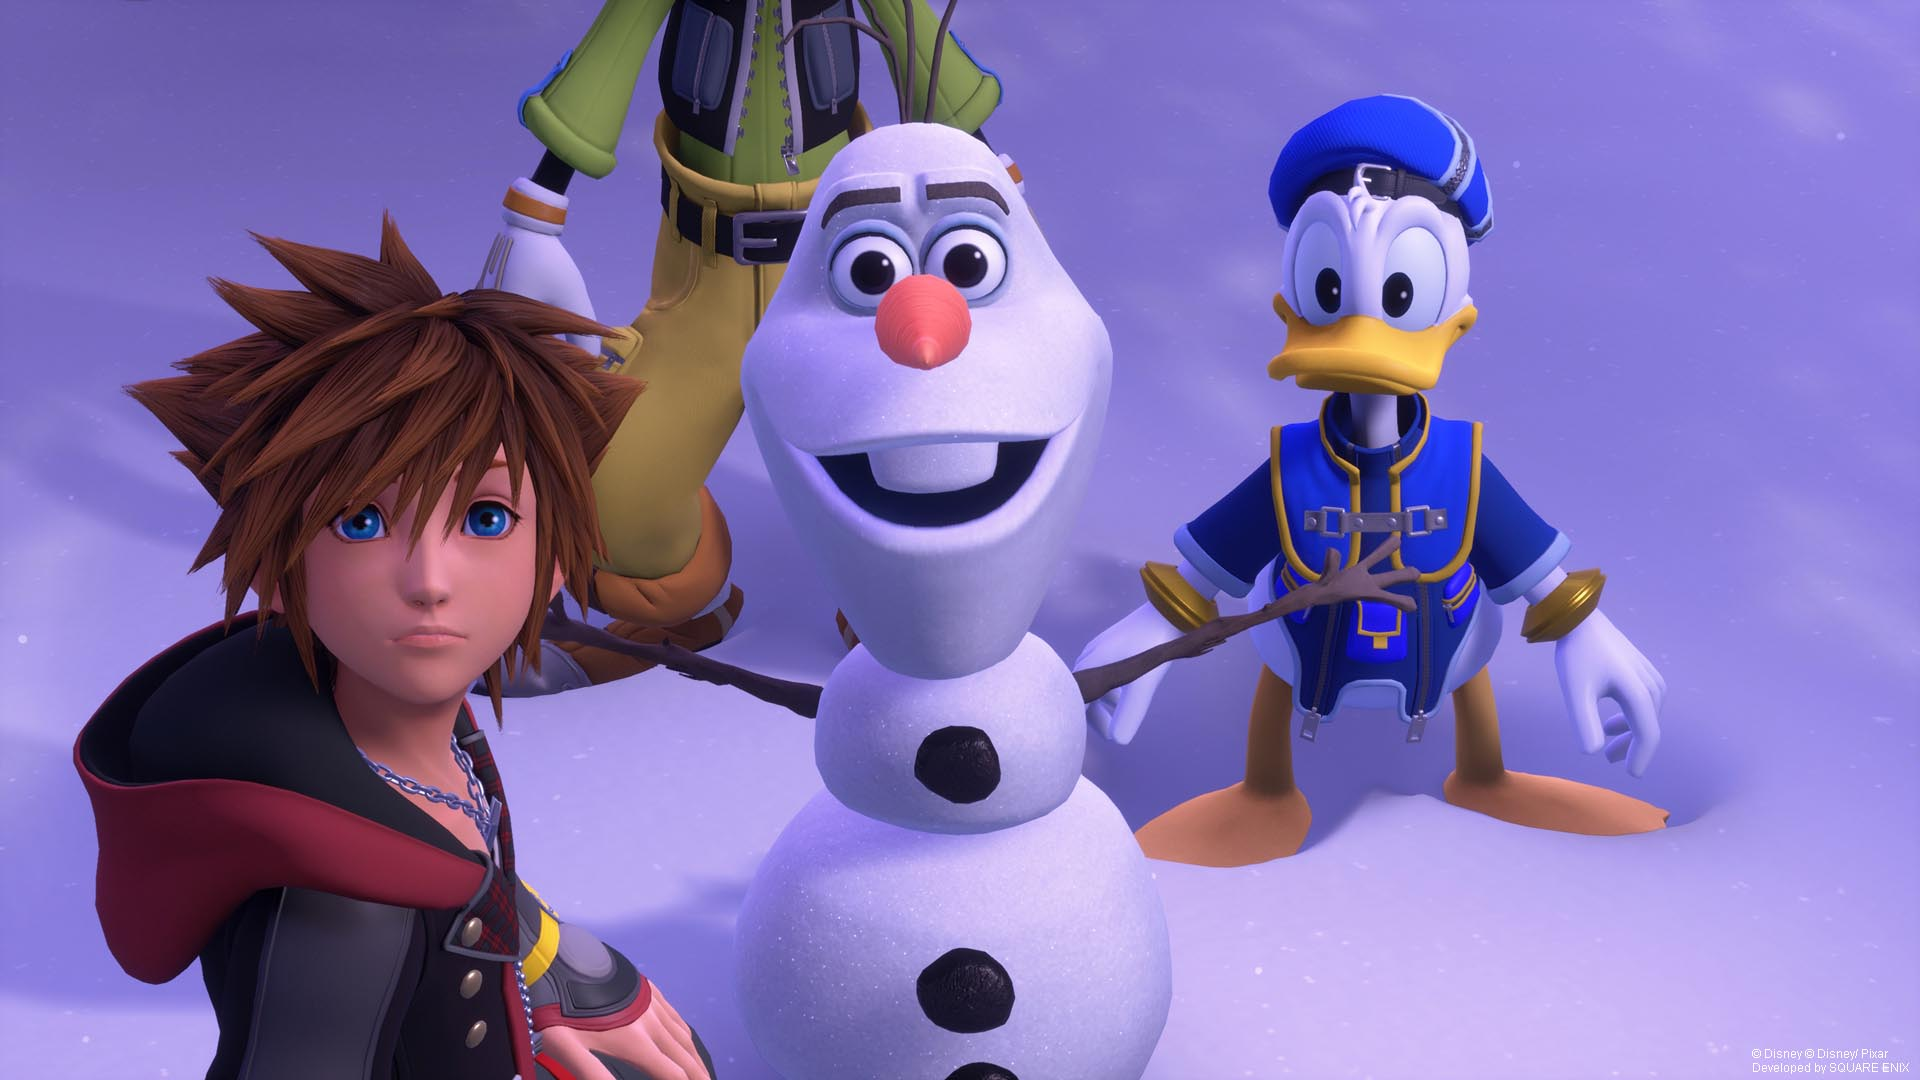 What is Kingdom Hearts III?